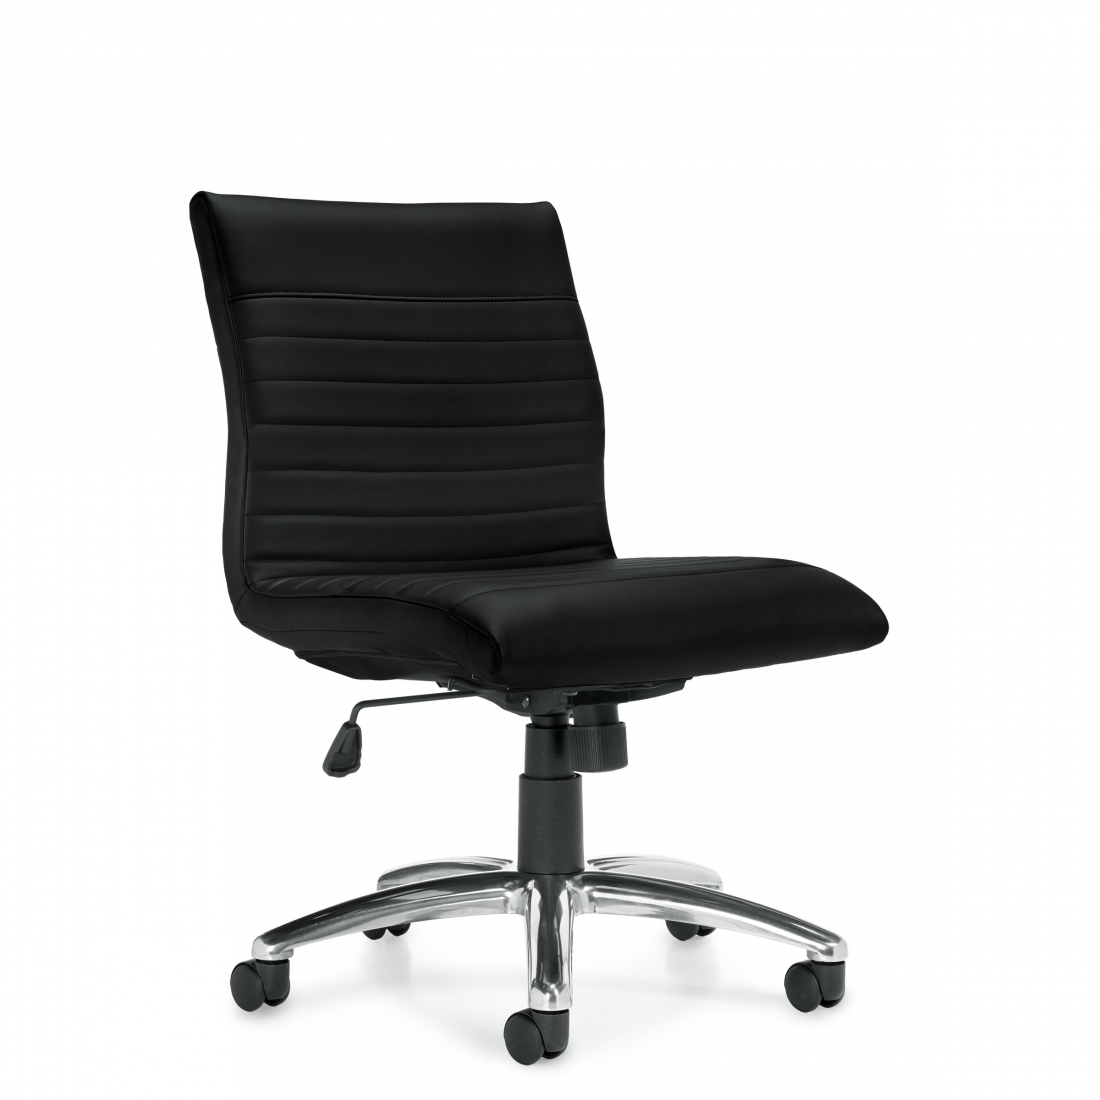 OTG Low Back Luxhide Tilter Chair #OTG11735